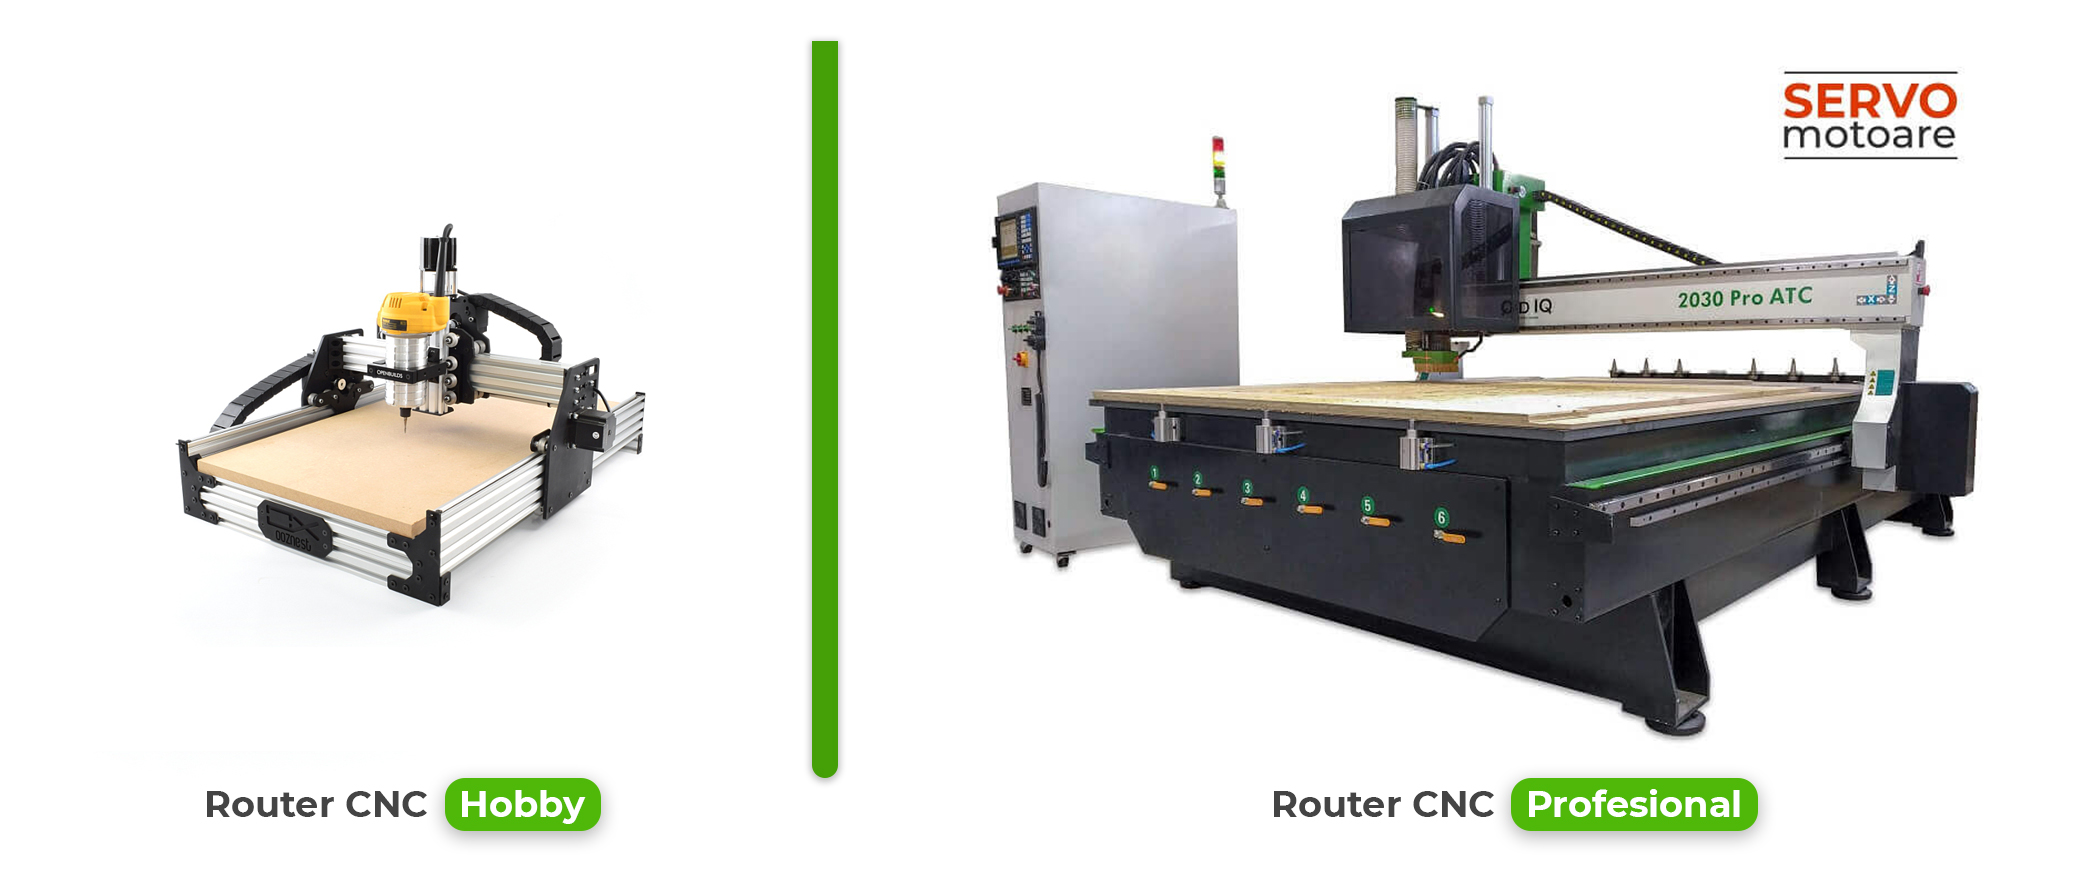 router cnc hobby vs router cnc pro atc wood iq